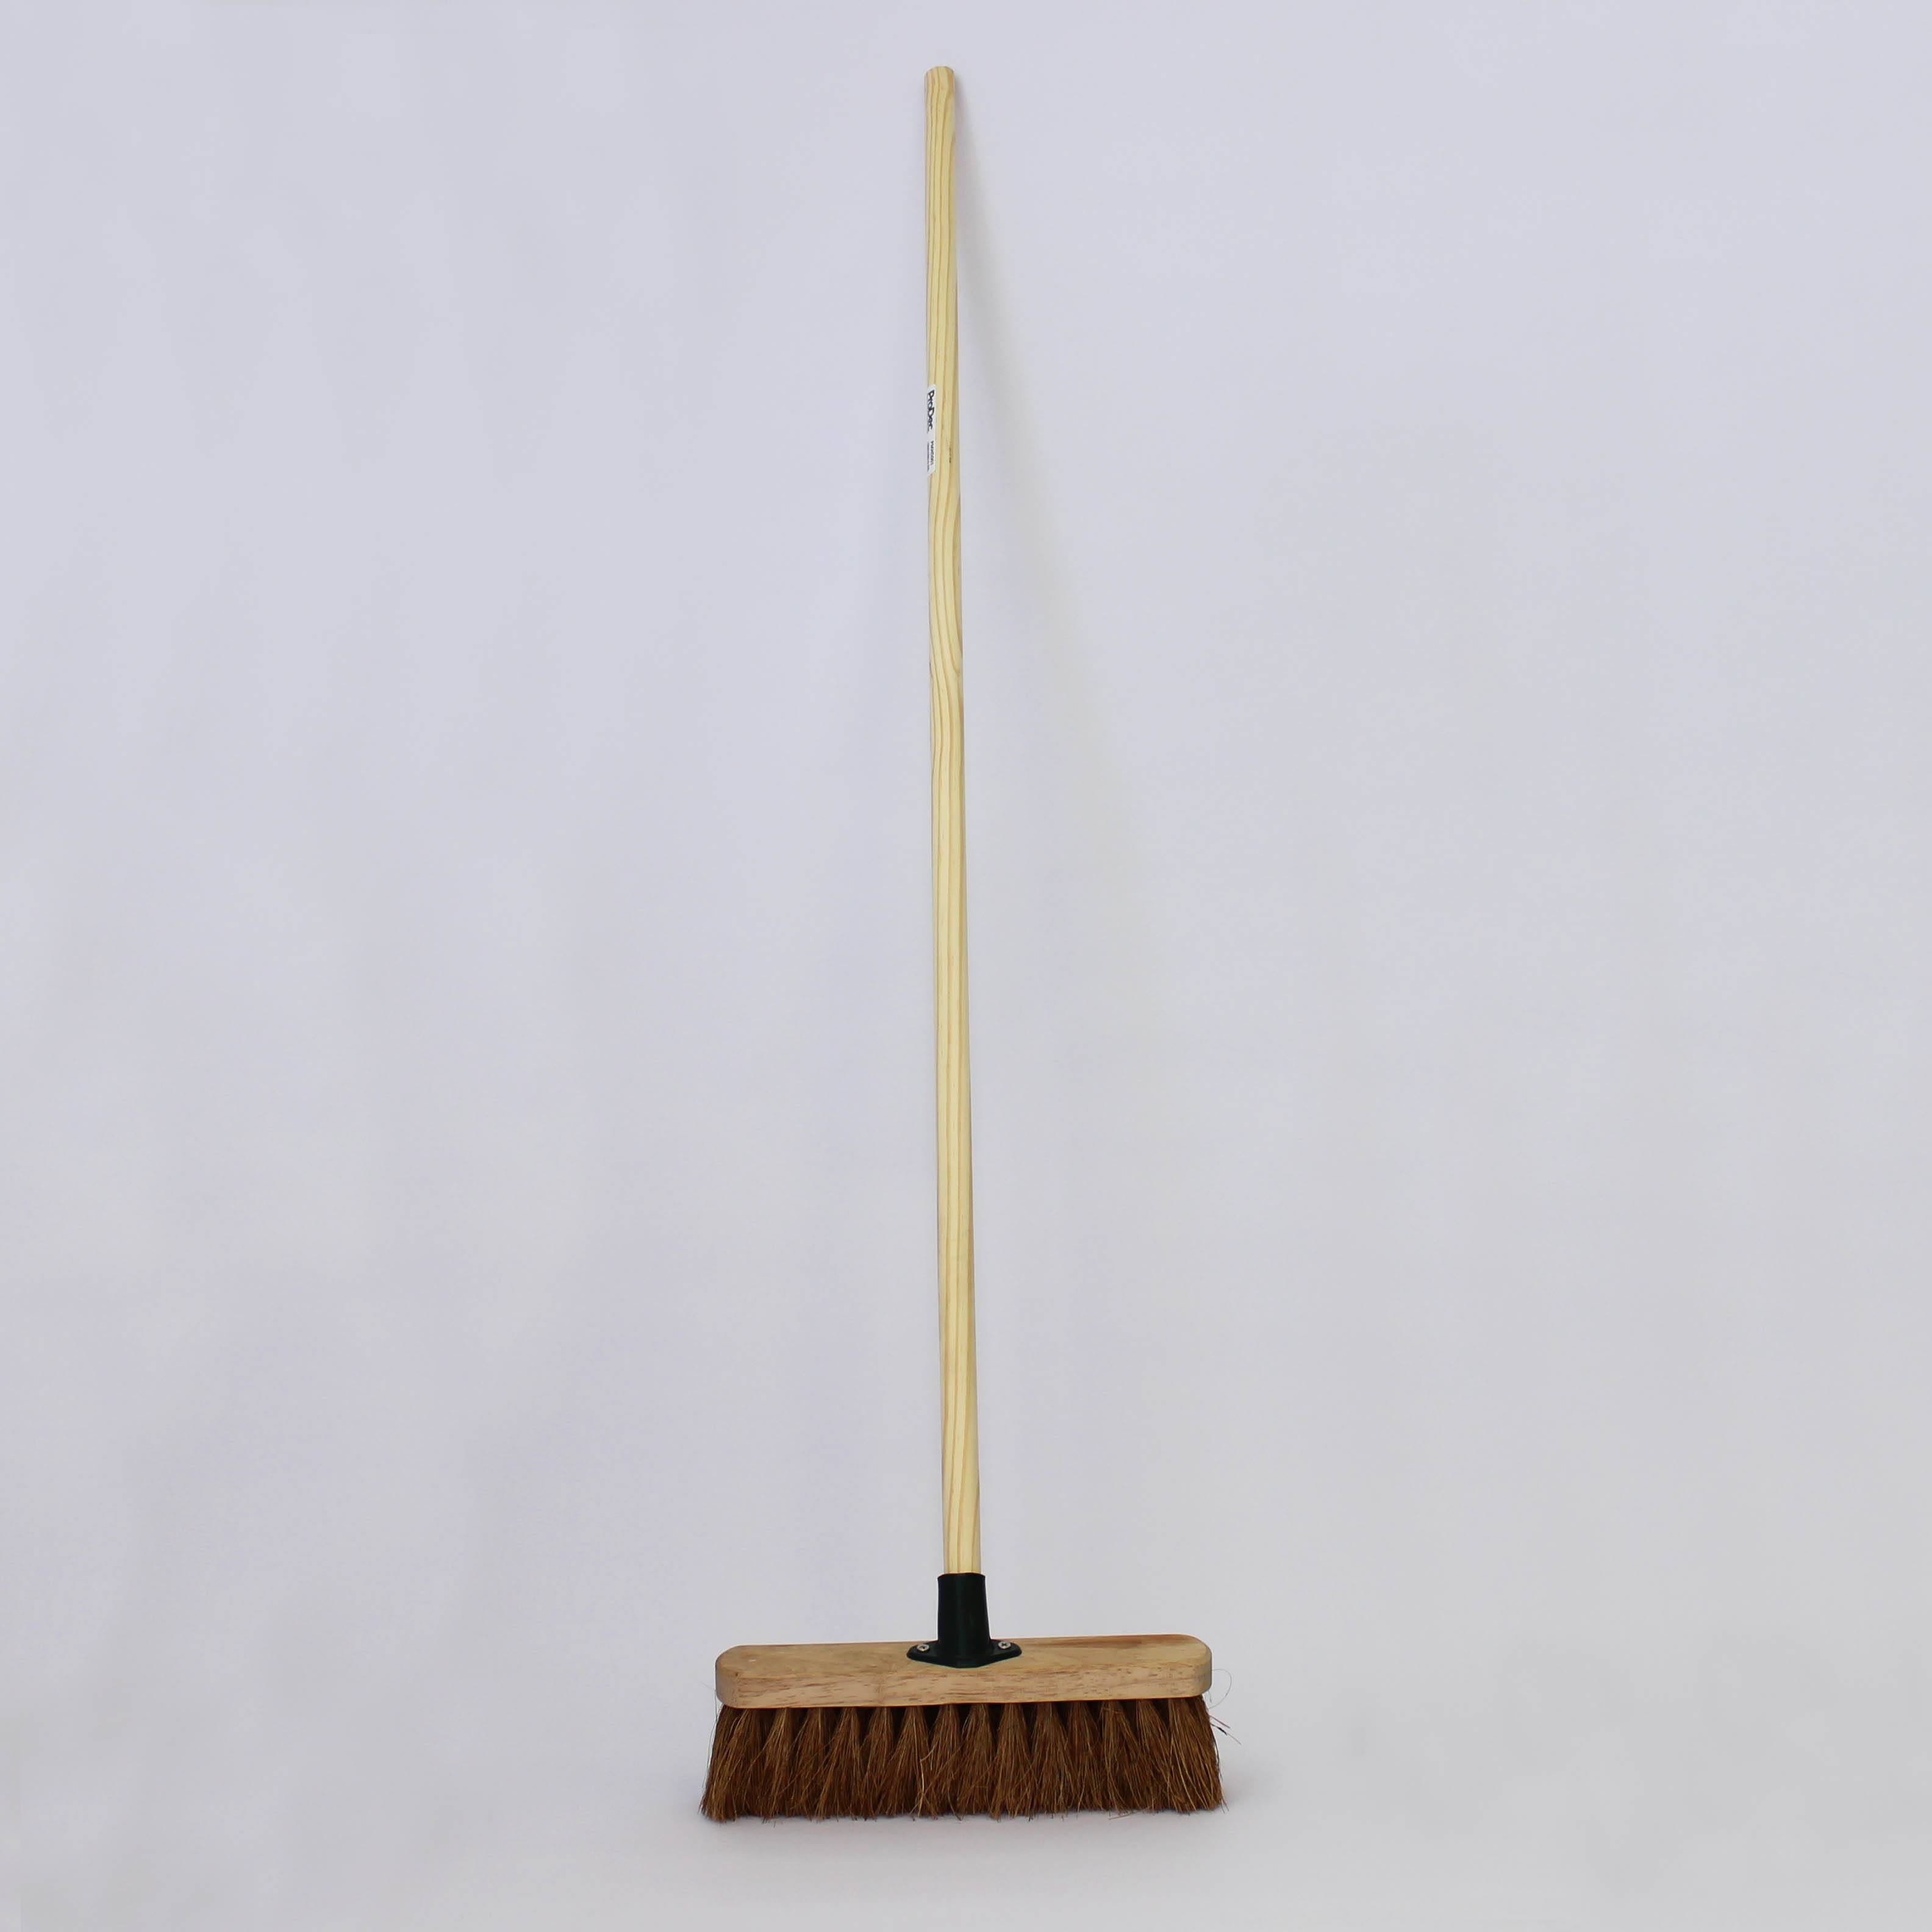 12 Inch Stiff Bristled Wooden Broom Rizistal